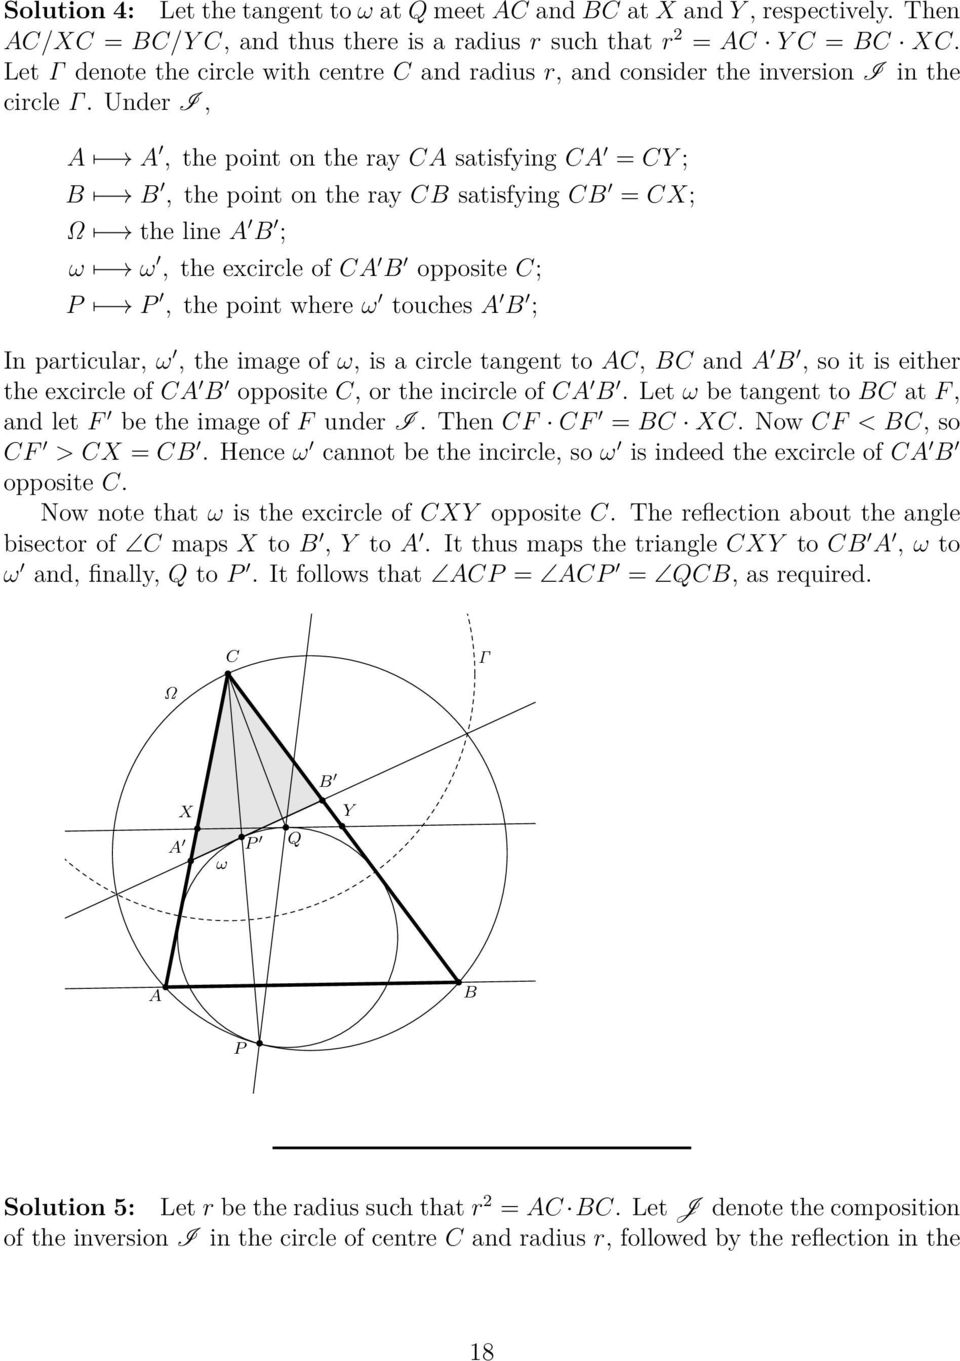 Under I, A A, the point on the ray CA satisfying CA = CY ; B B, the point on the ray CB satisfying CB = CX; Ω the line A B ; ω ω, the excircle of CA B opposite C; P P, the point where ω touches A B ;